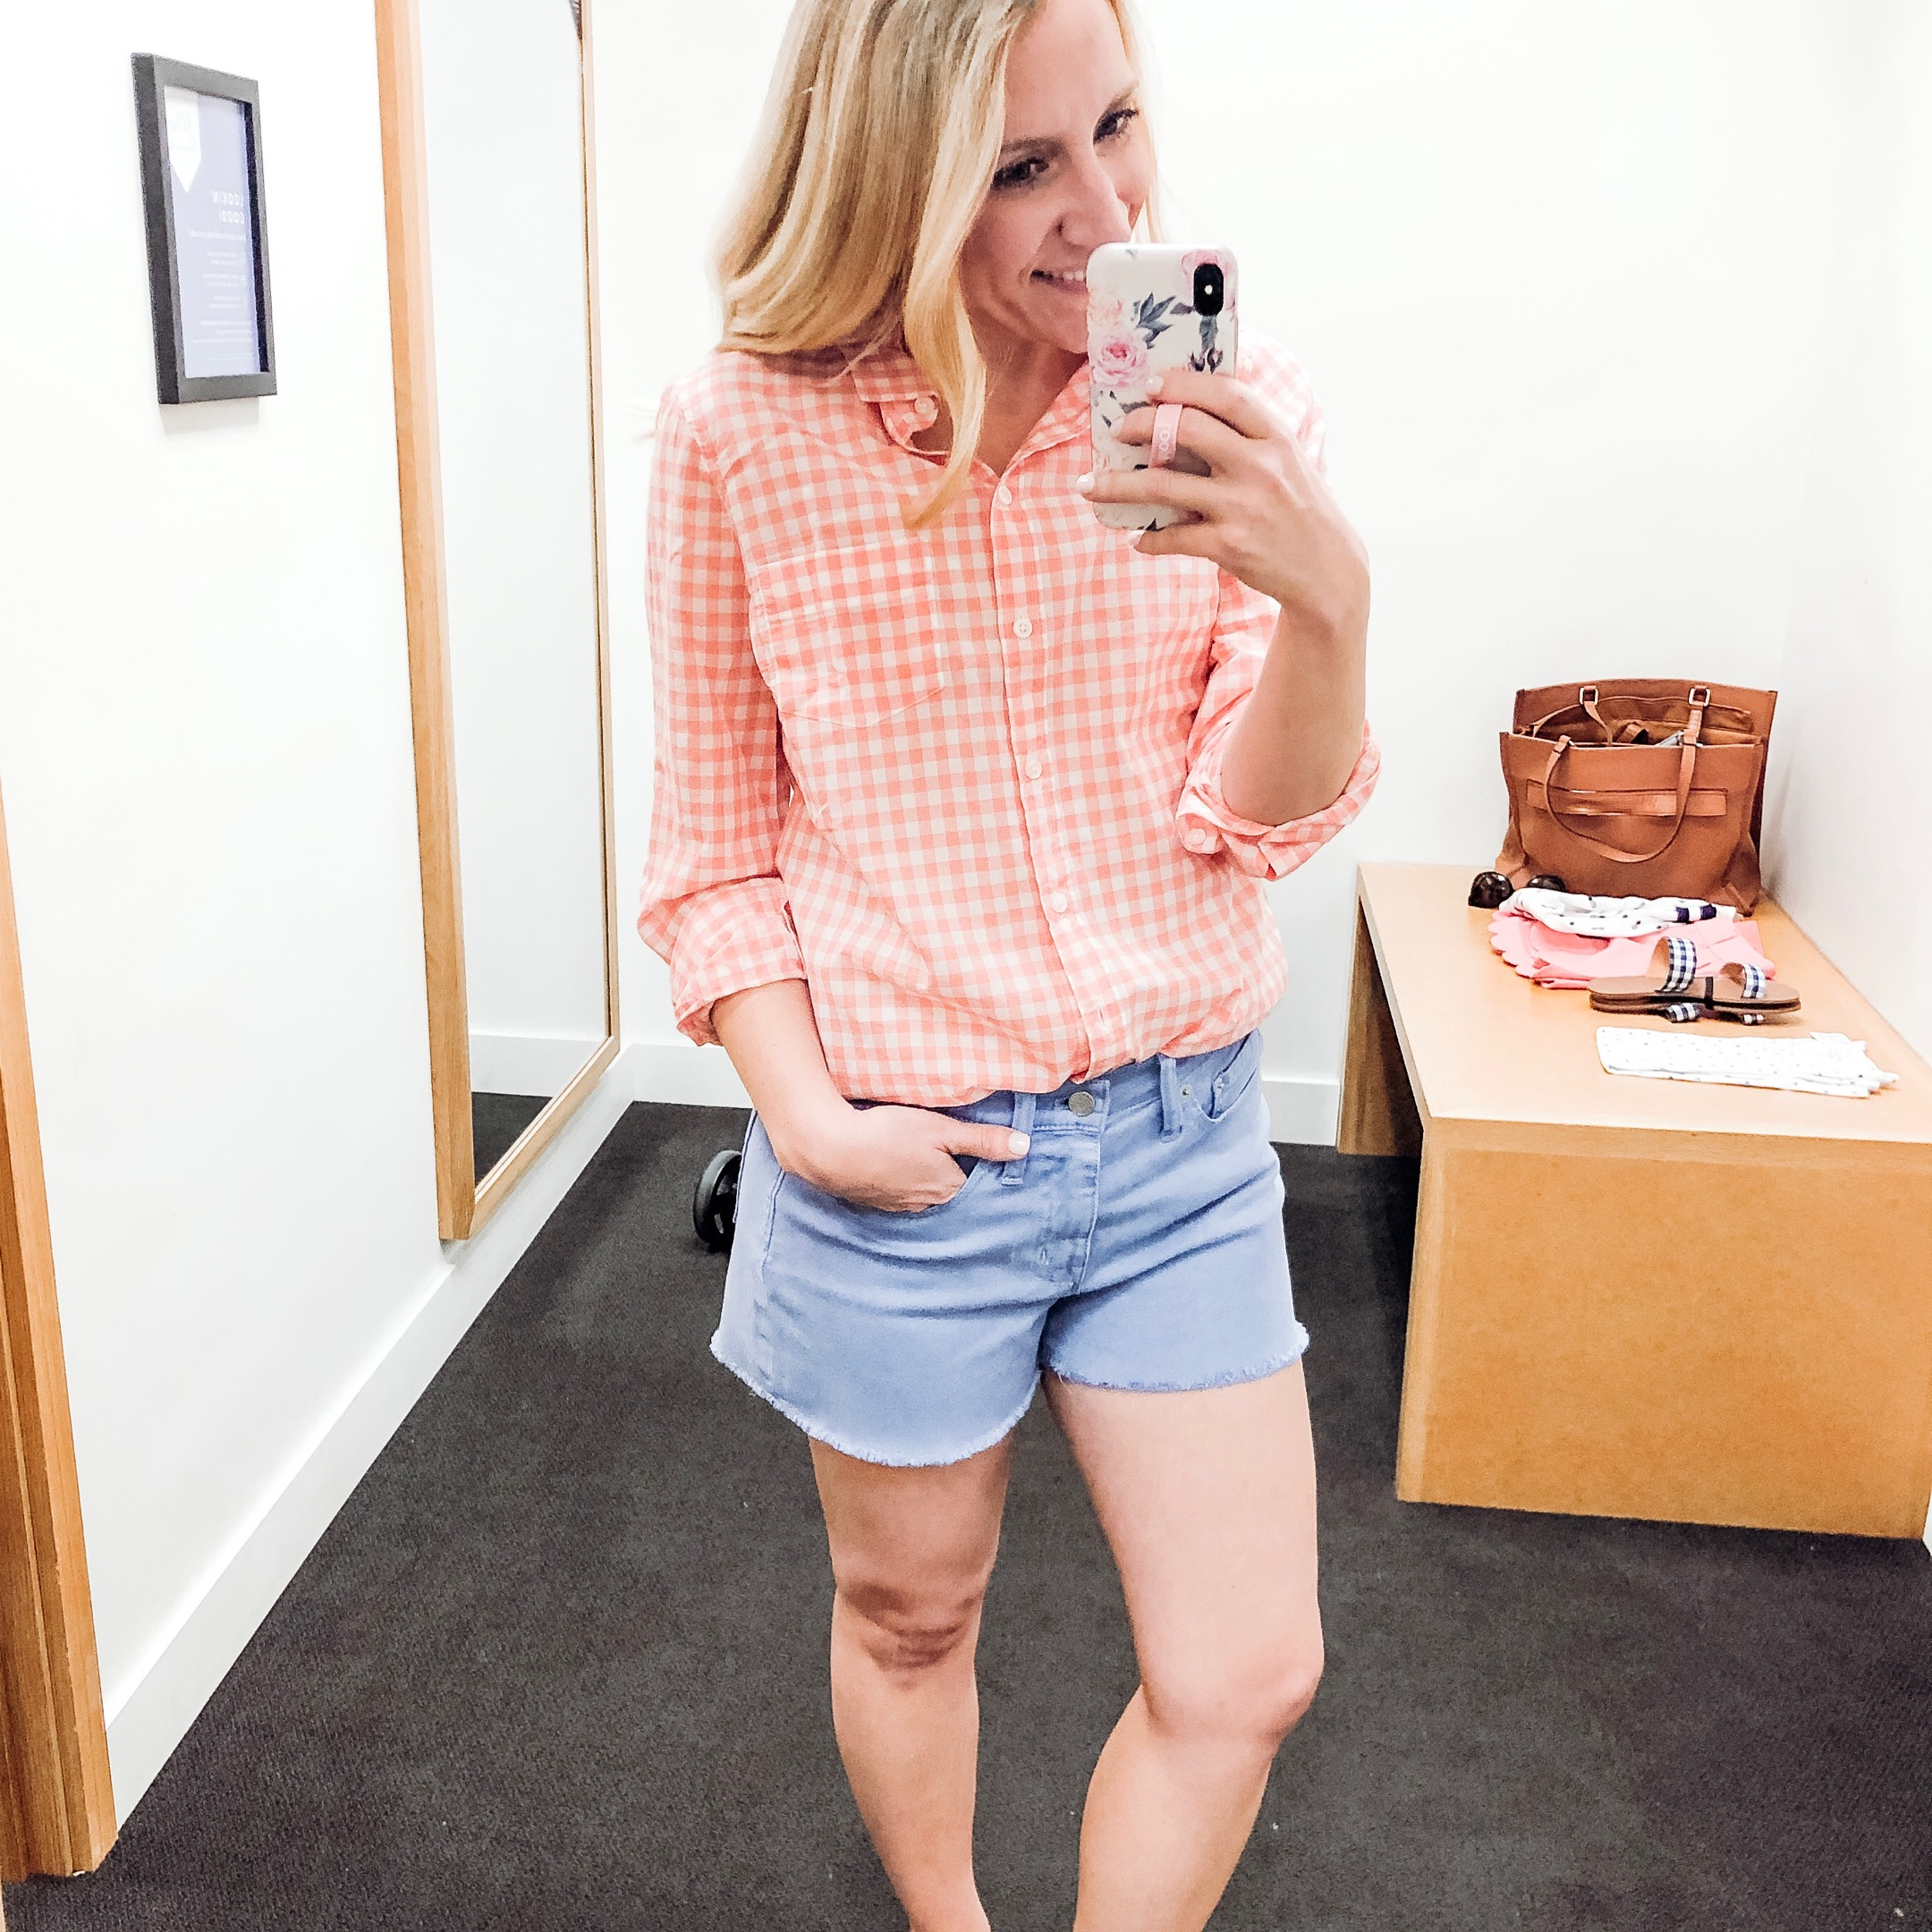 J. CREW FACTORY TRY ON